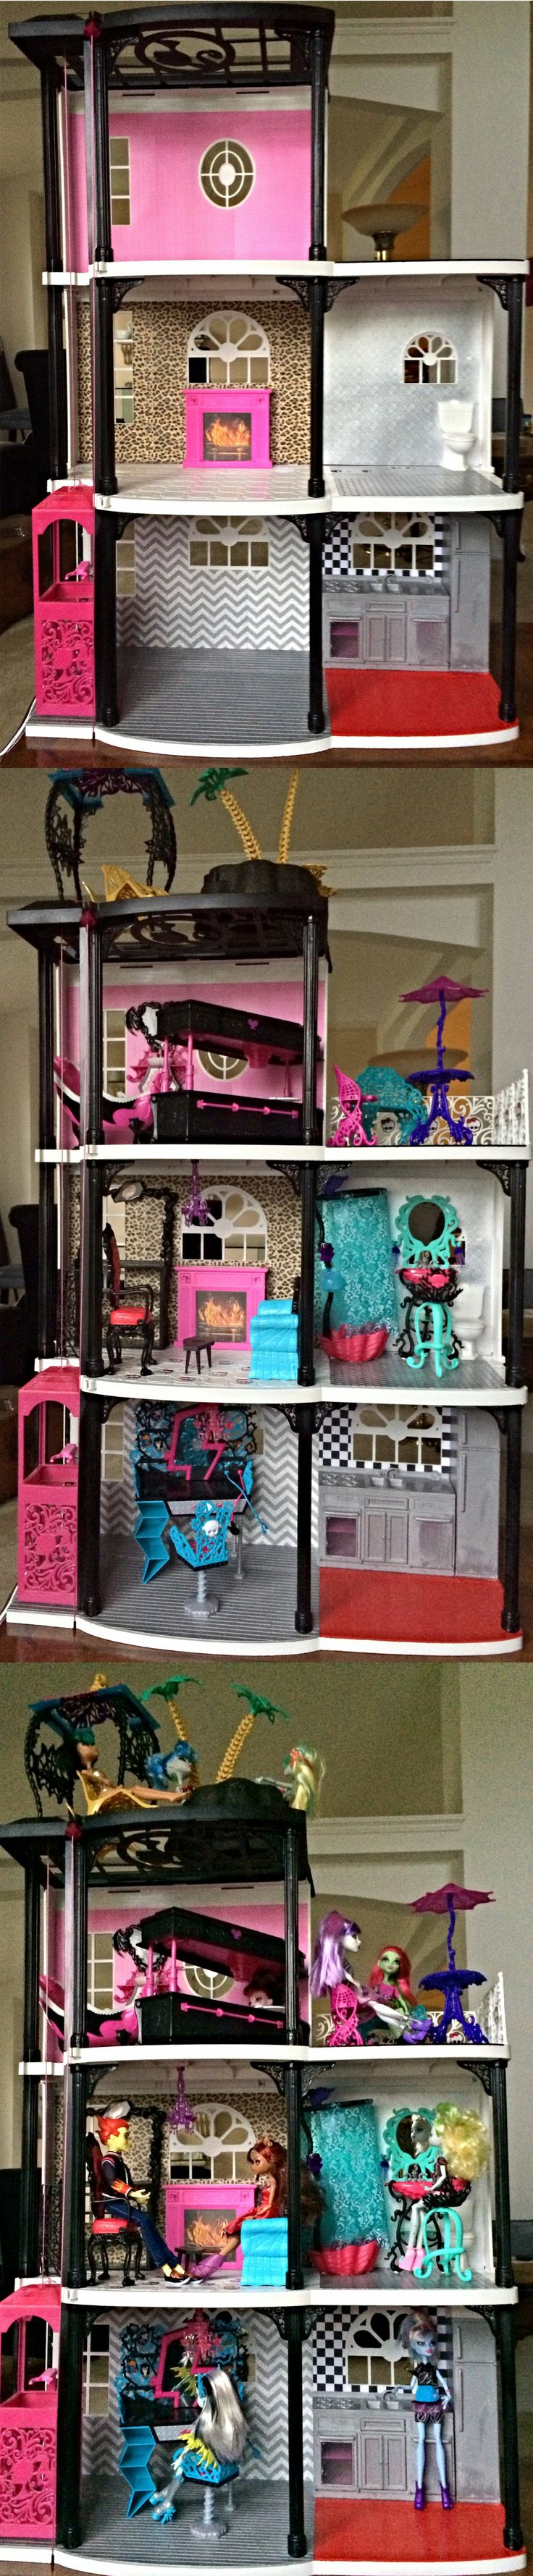 This is the doll house I'm currently working on, not this one Per-say. The exact kind though. This is the Barbie dream house came out in 2012. I have completely remodeled it and even was able to get rid of the pink and actually all the Barbie symbols and icons including the roof by adding a roof rather than taking it off and replacing. So you guys know now what I do in my spare time which is little. Btw. The pink on the elevators is gone too. Yah! Blonde in pic.